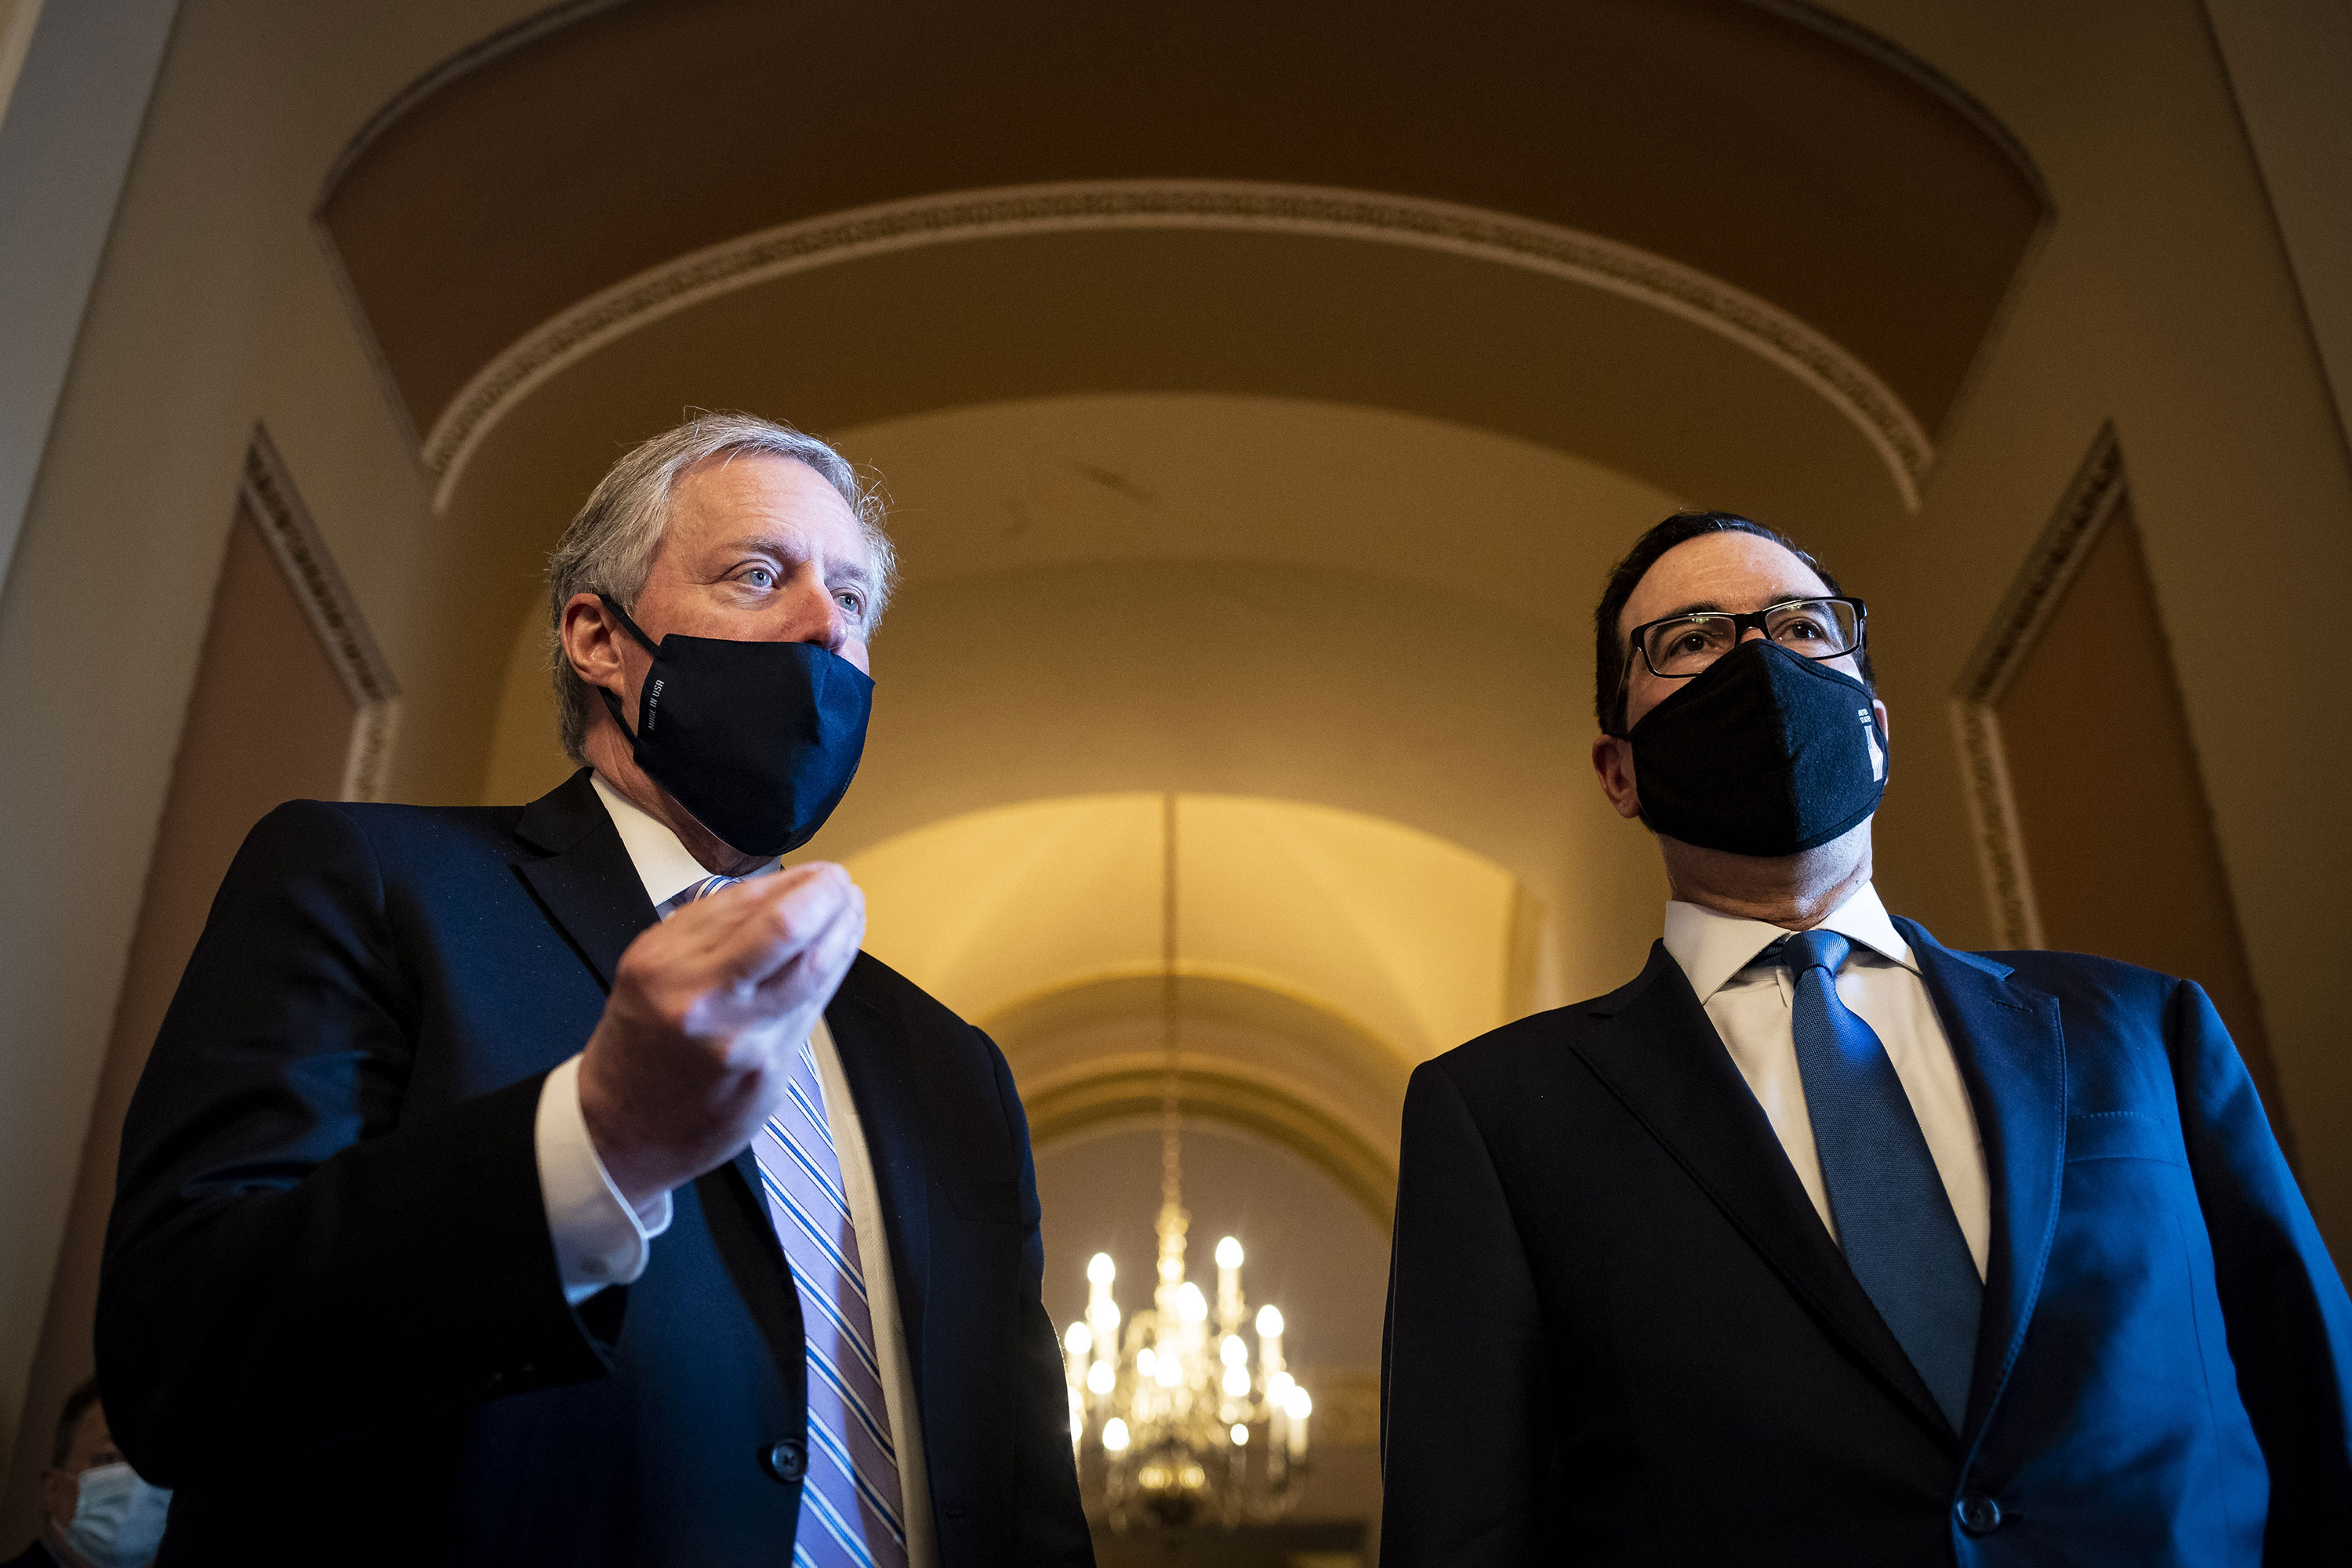 White House chief of staff Mark Meadows and Treasury Secretary Steven Mnuchin pictured at the U.S. Capitol on July 23.